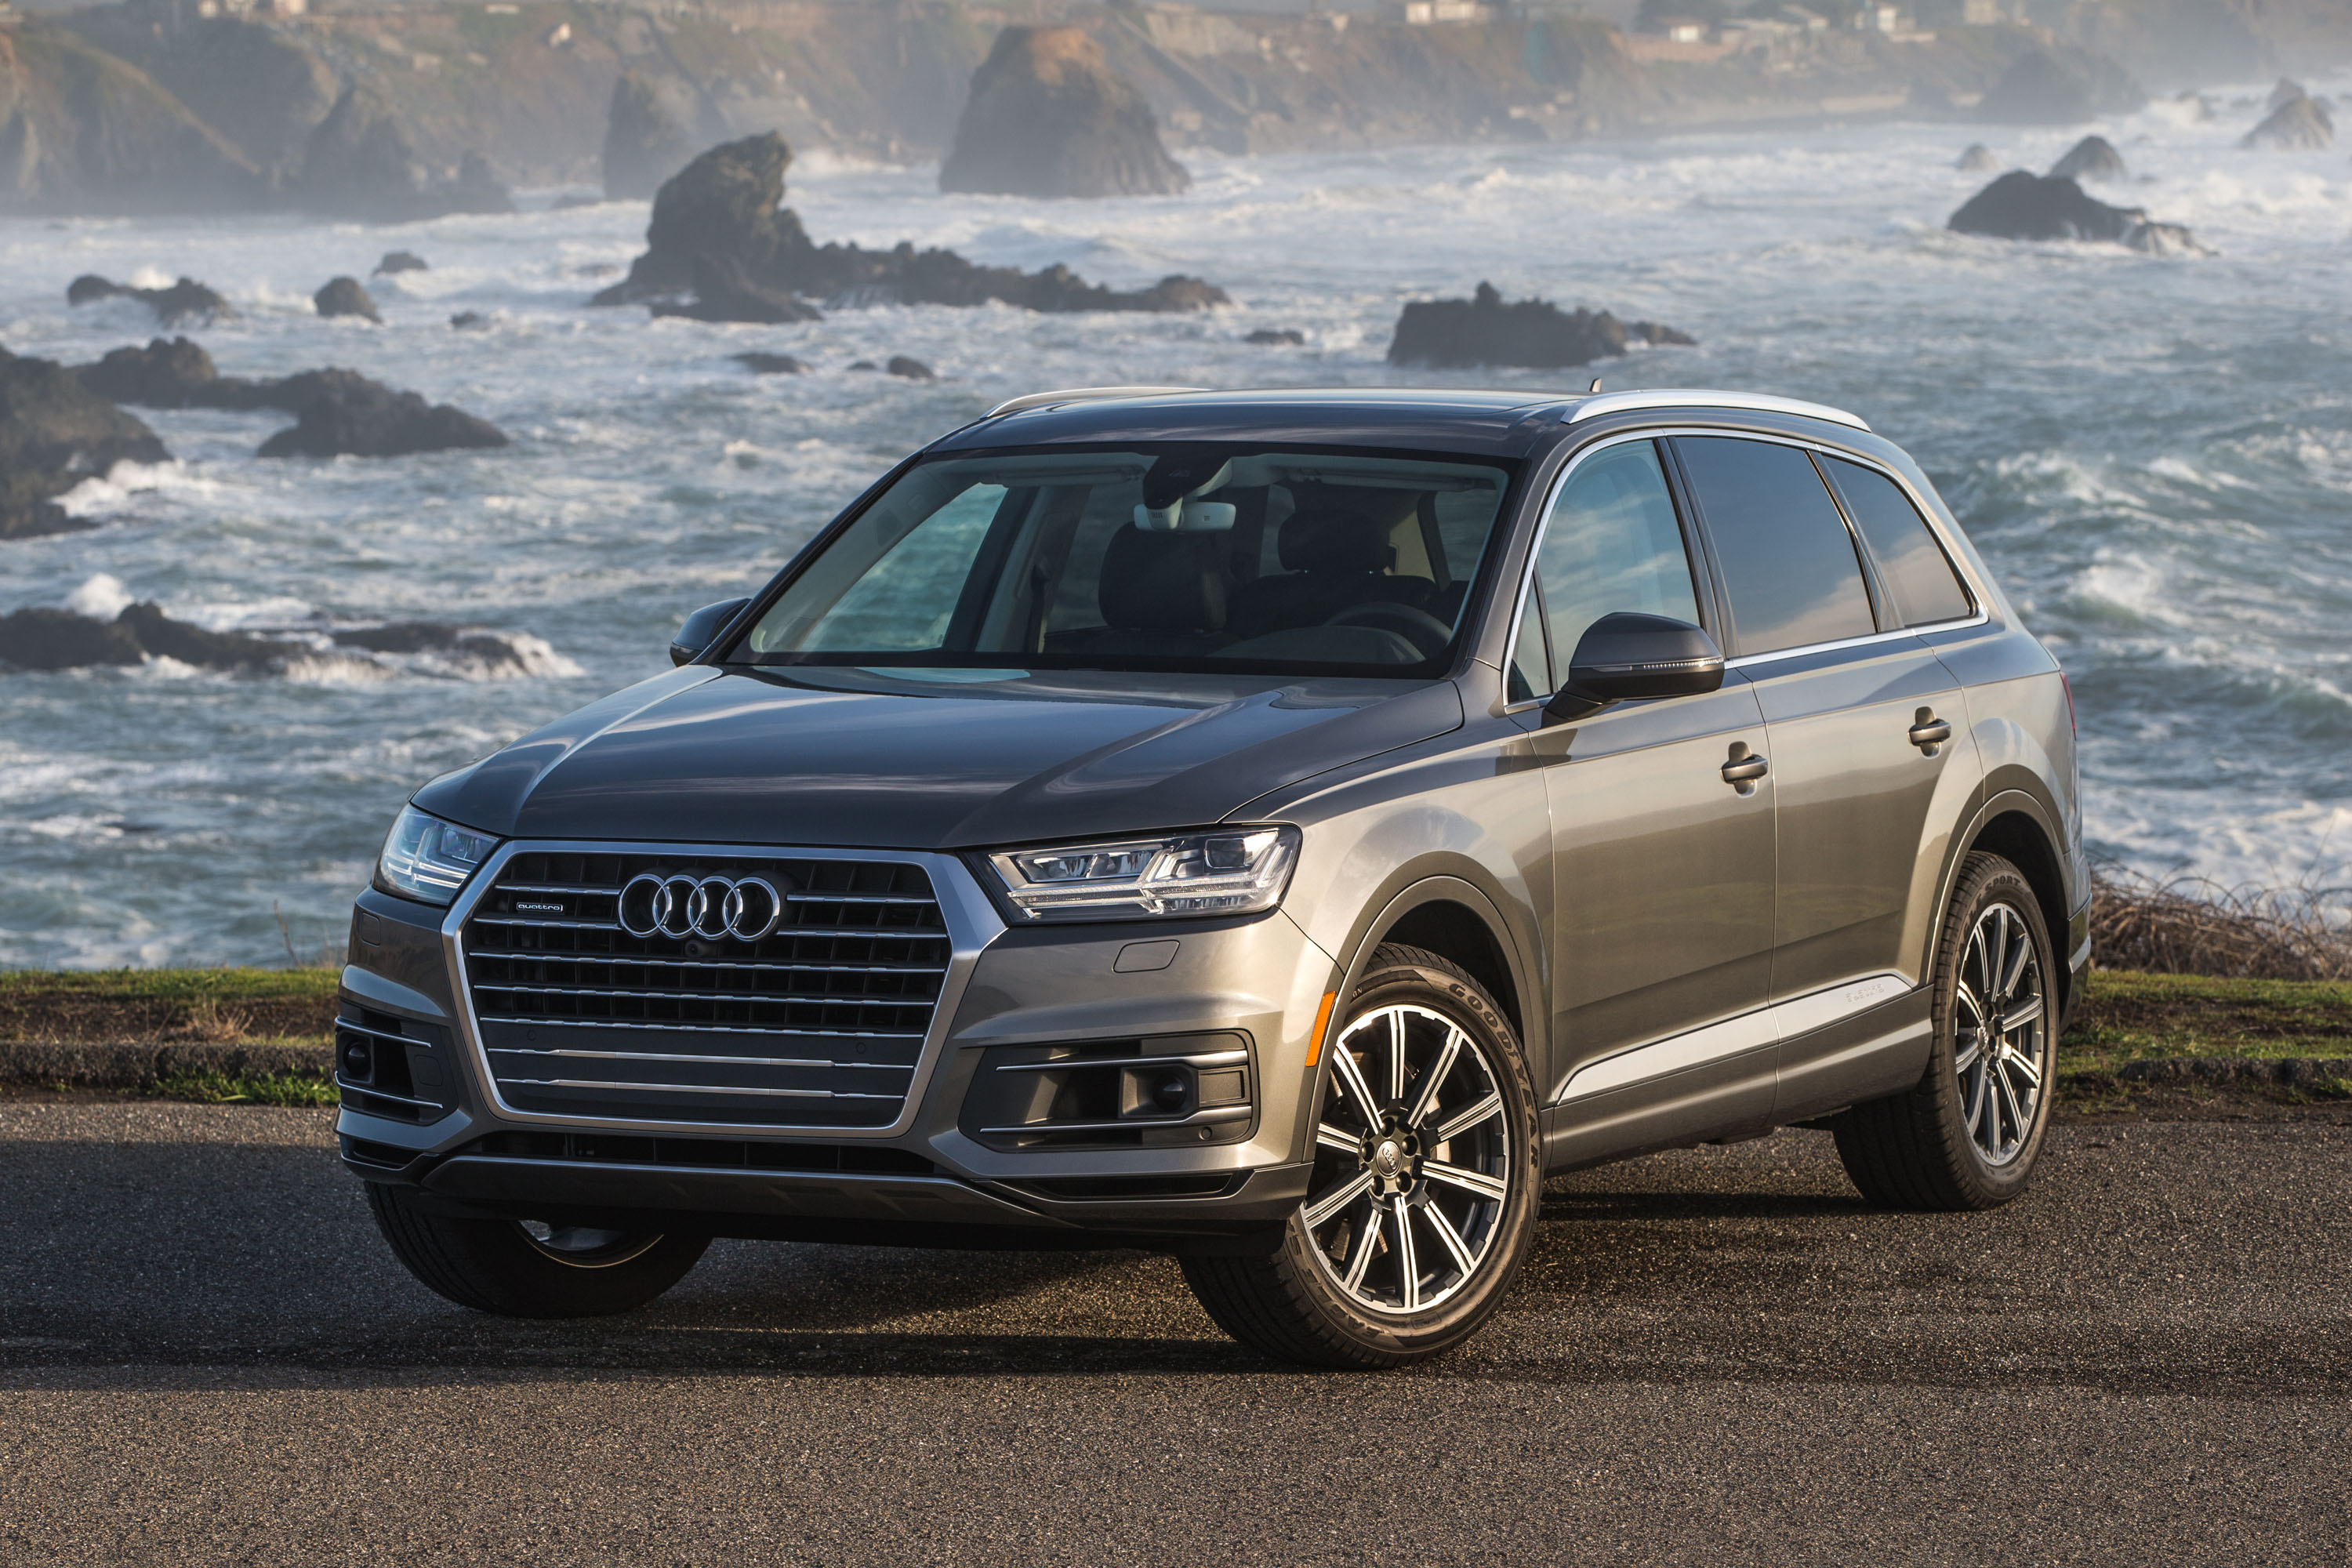 Bmw Of Houston >> 2018 Audi Q7 Premium Plus First Drive Review